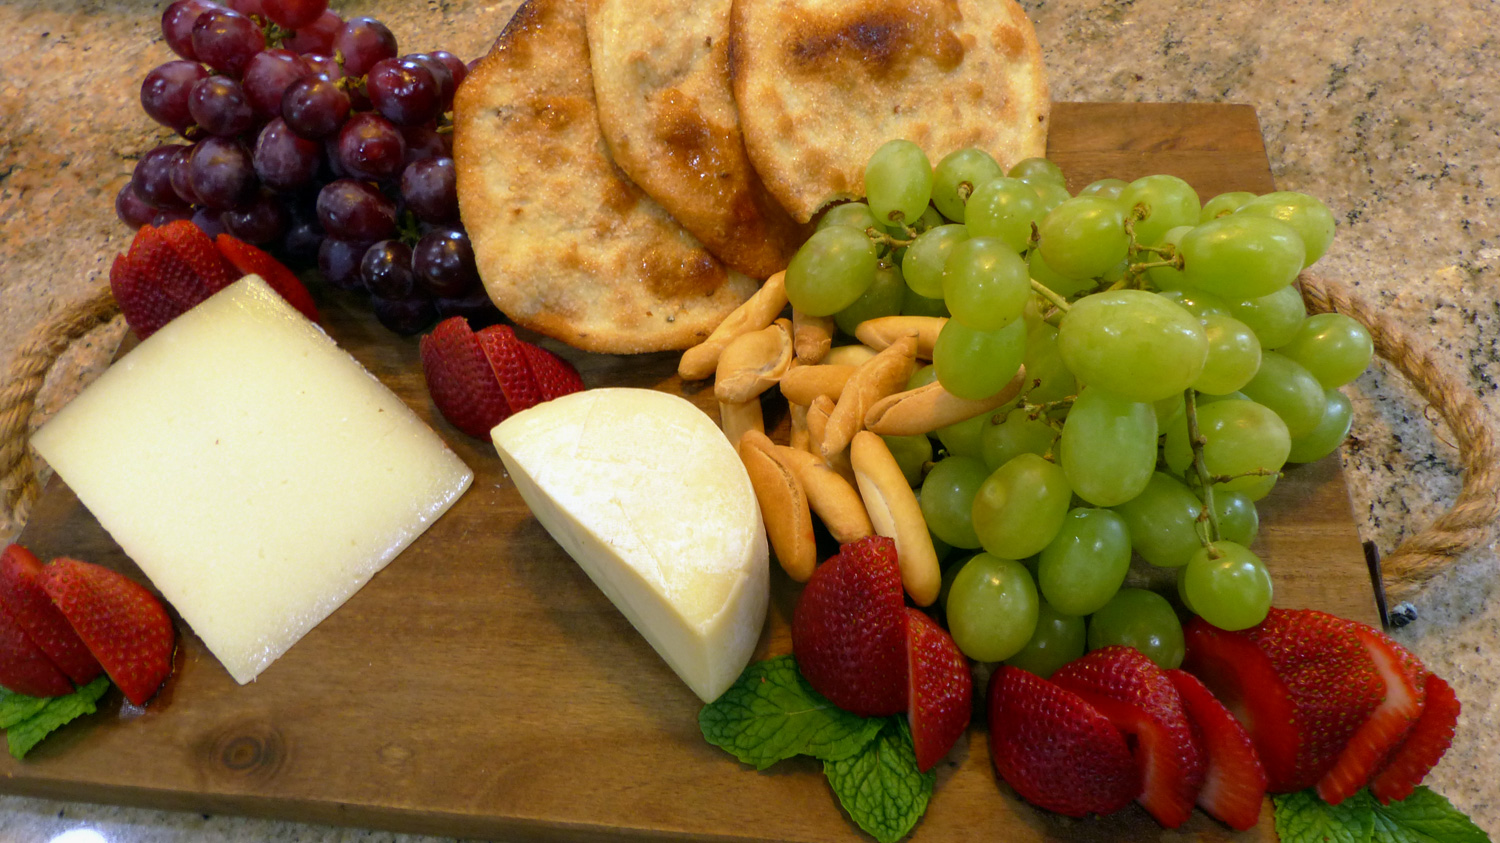 Cheeses with strawberries, grapes, mini  bread sticks  and  Tortas de Aceite  (Sweet Olive Oil Crackers).